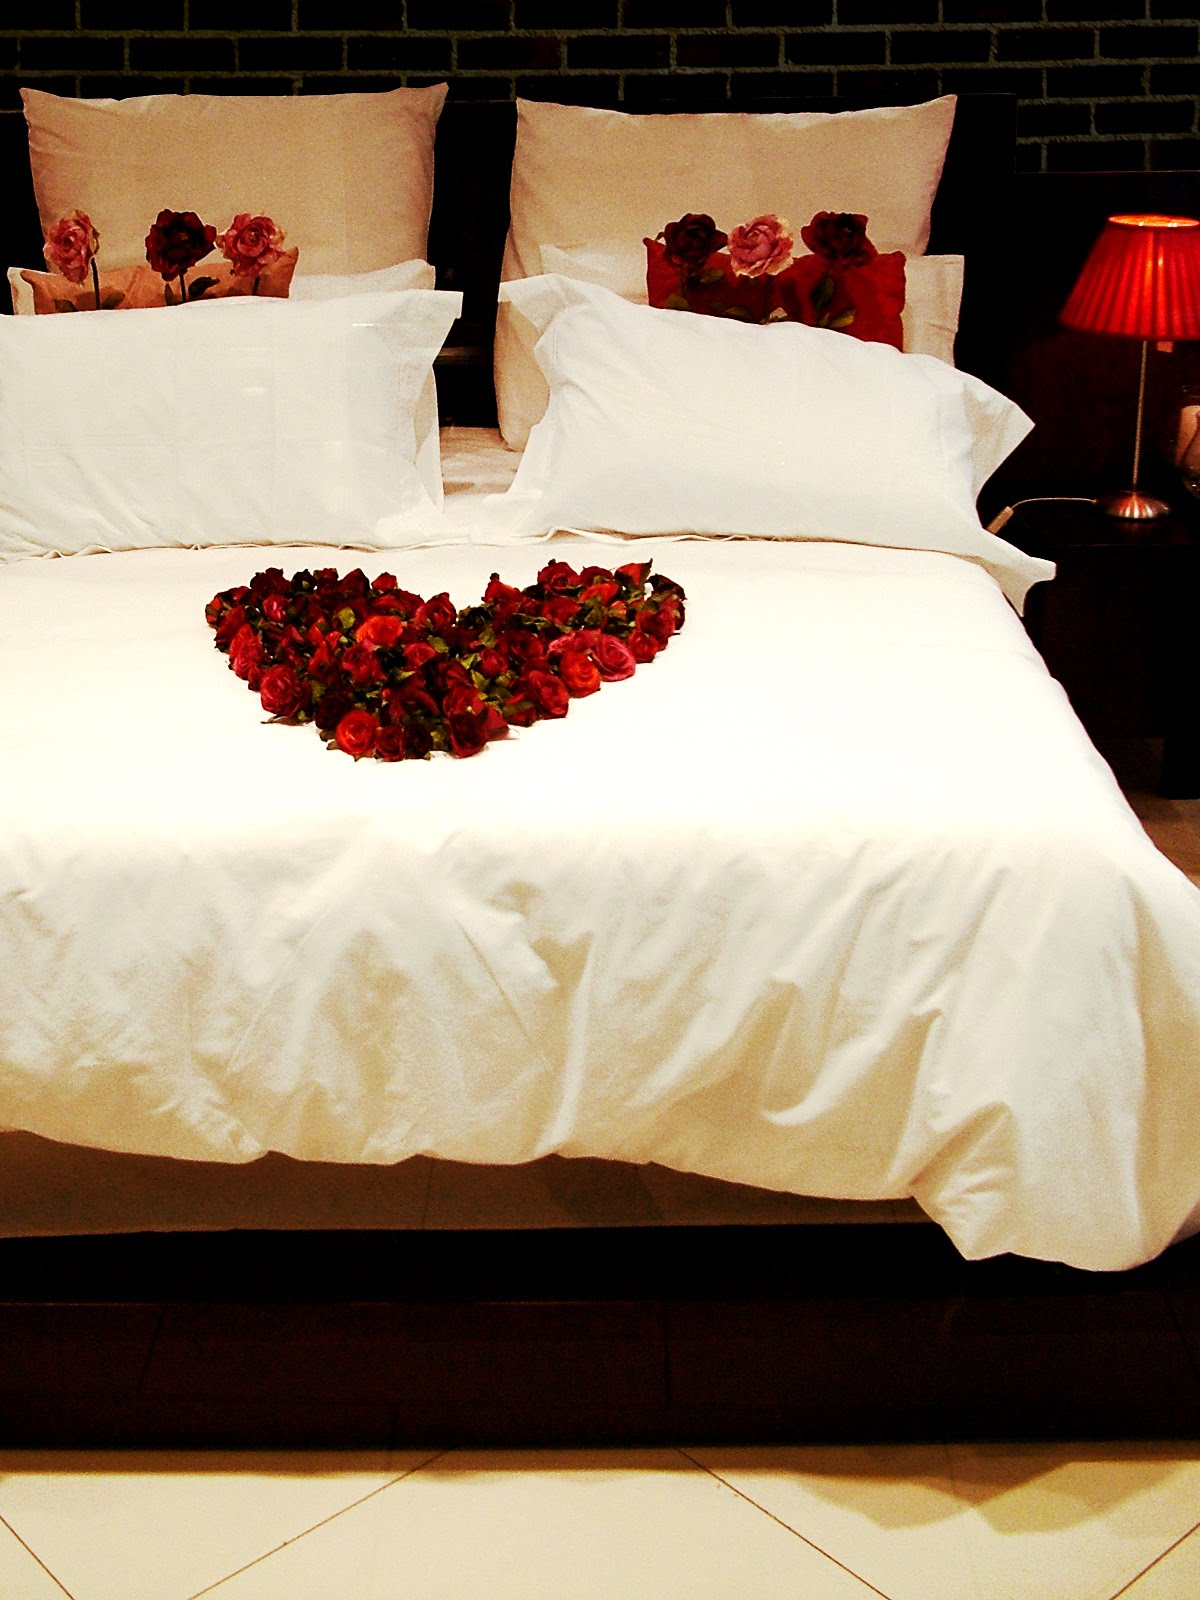 A Little Something Spicy: Sexy Sultry Bed - Sensual Valentines Day Bedroom Ideas